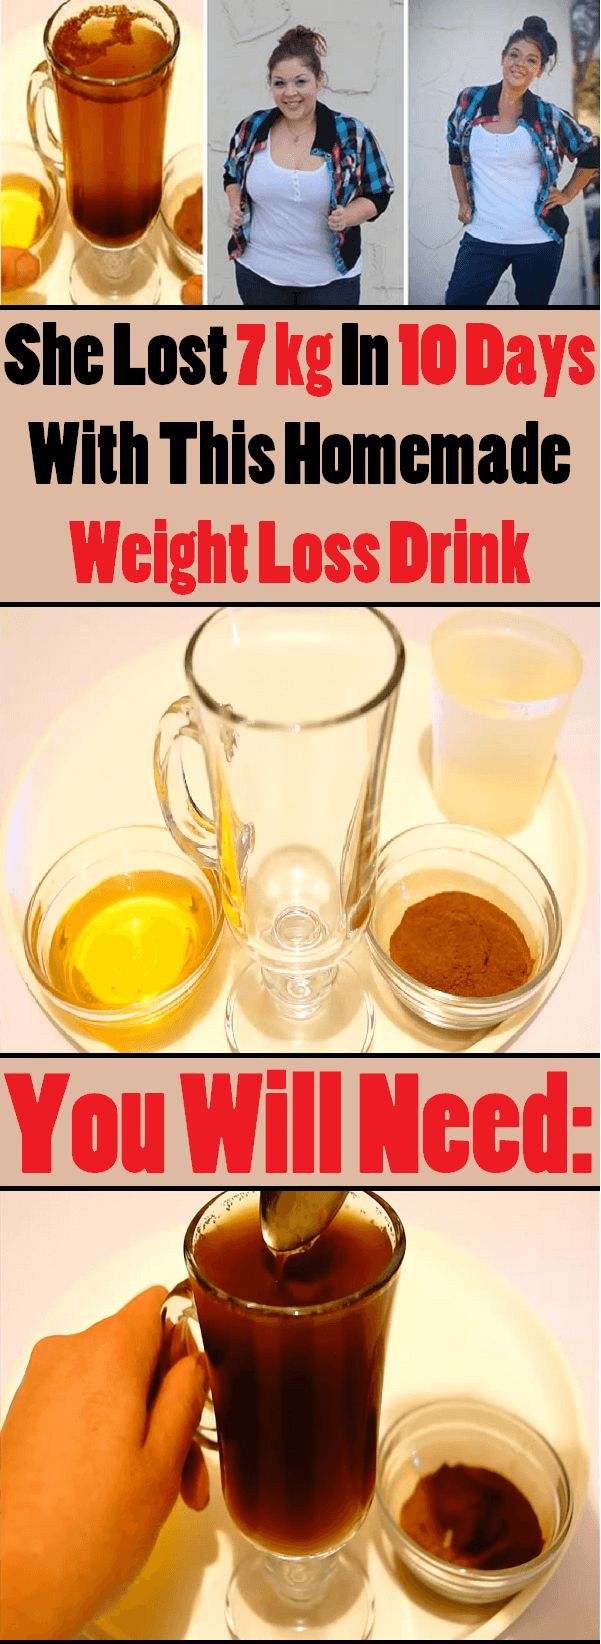 She Lost 7 Kg In 10 Days With This Homemade Weight Loss Drink!!!